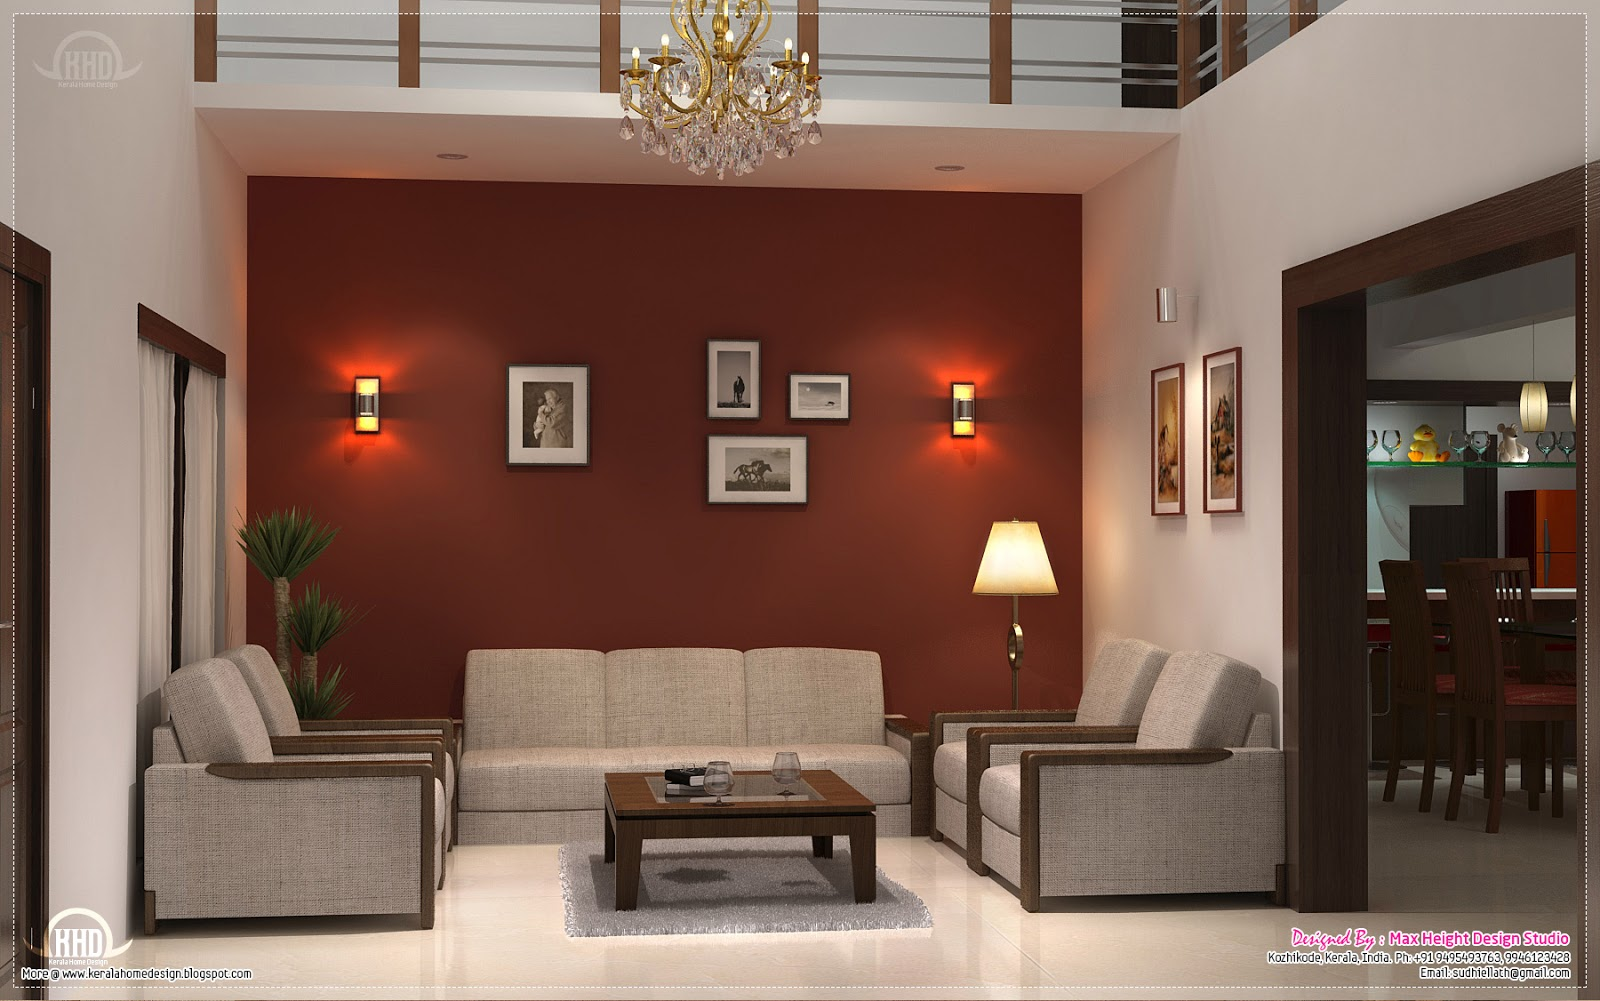 Home interior design ideas kerala home design and floor - Designs for homes interior ...